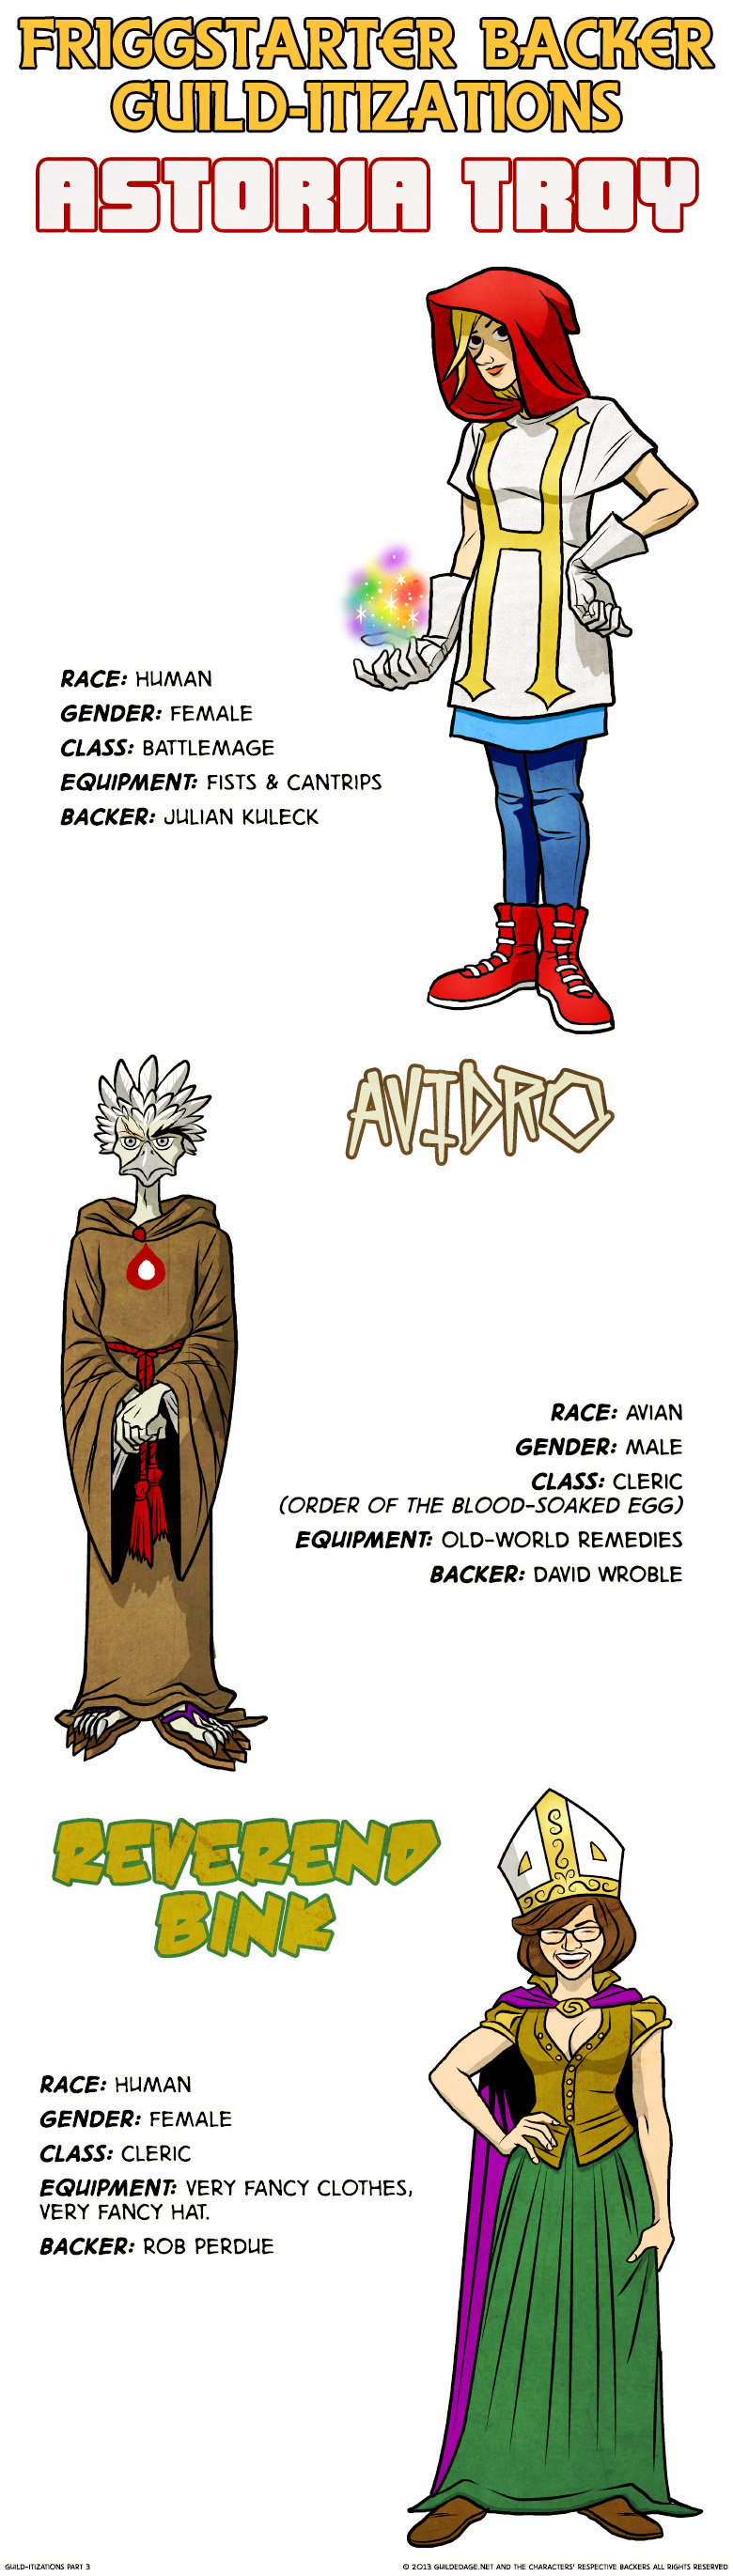 Not gonna lie: Avidro scares the crap out of me.